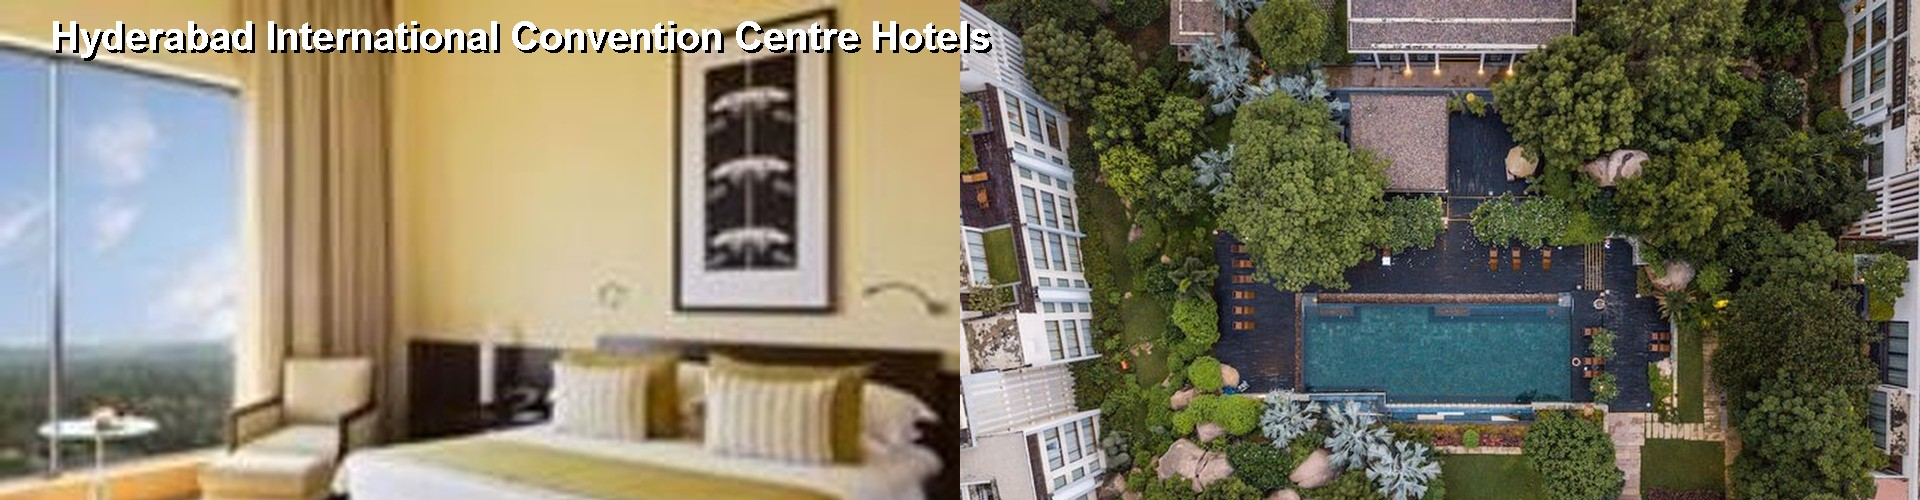 5 Best Hotels near Hyderabad International Convention Centre